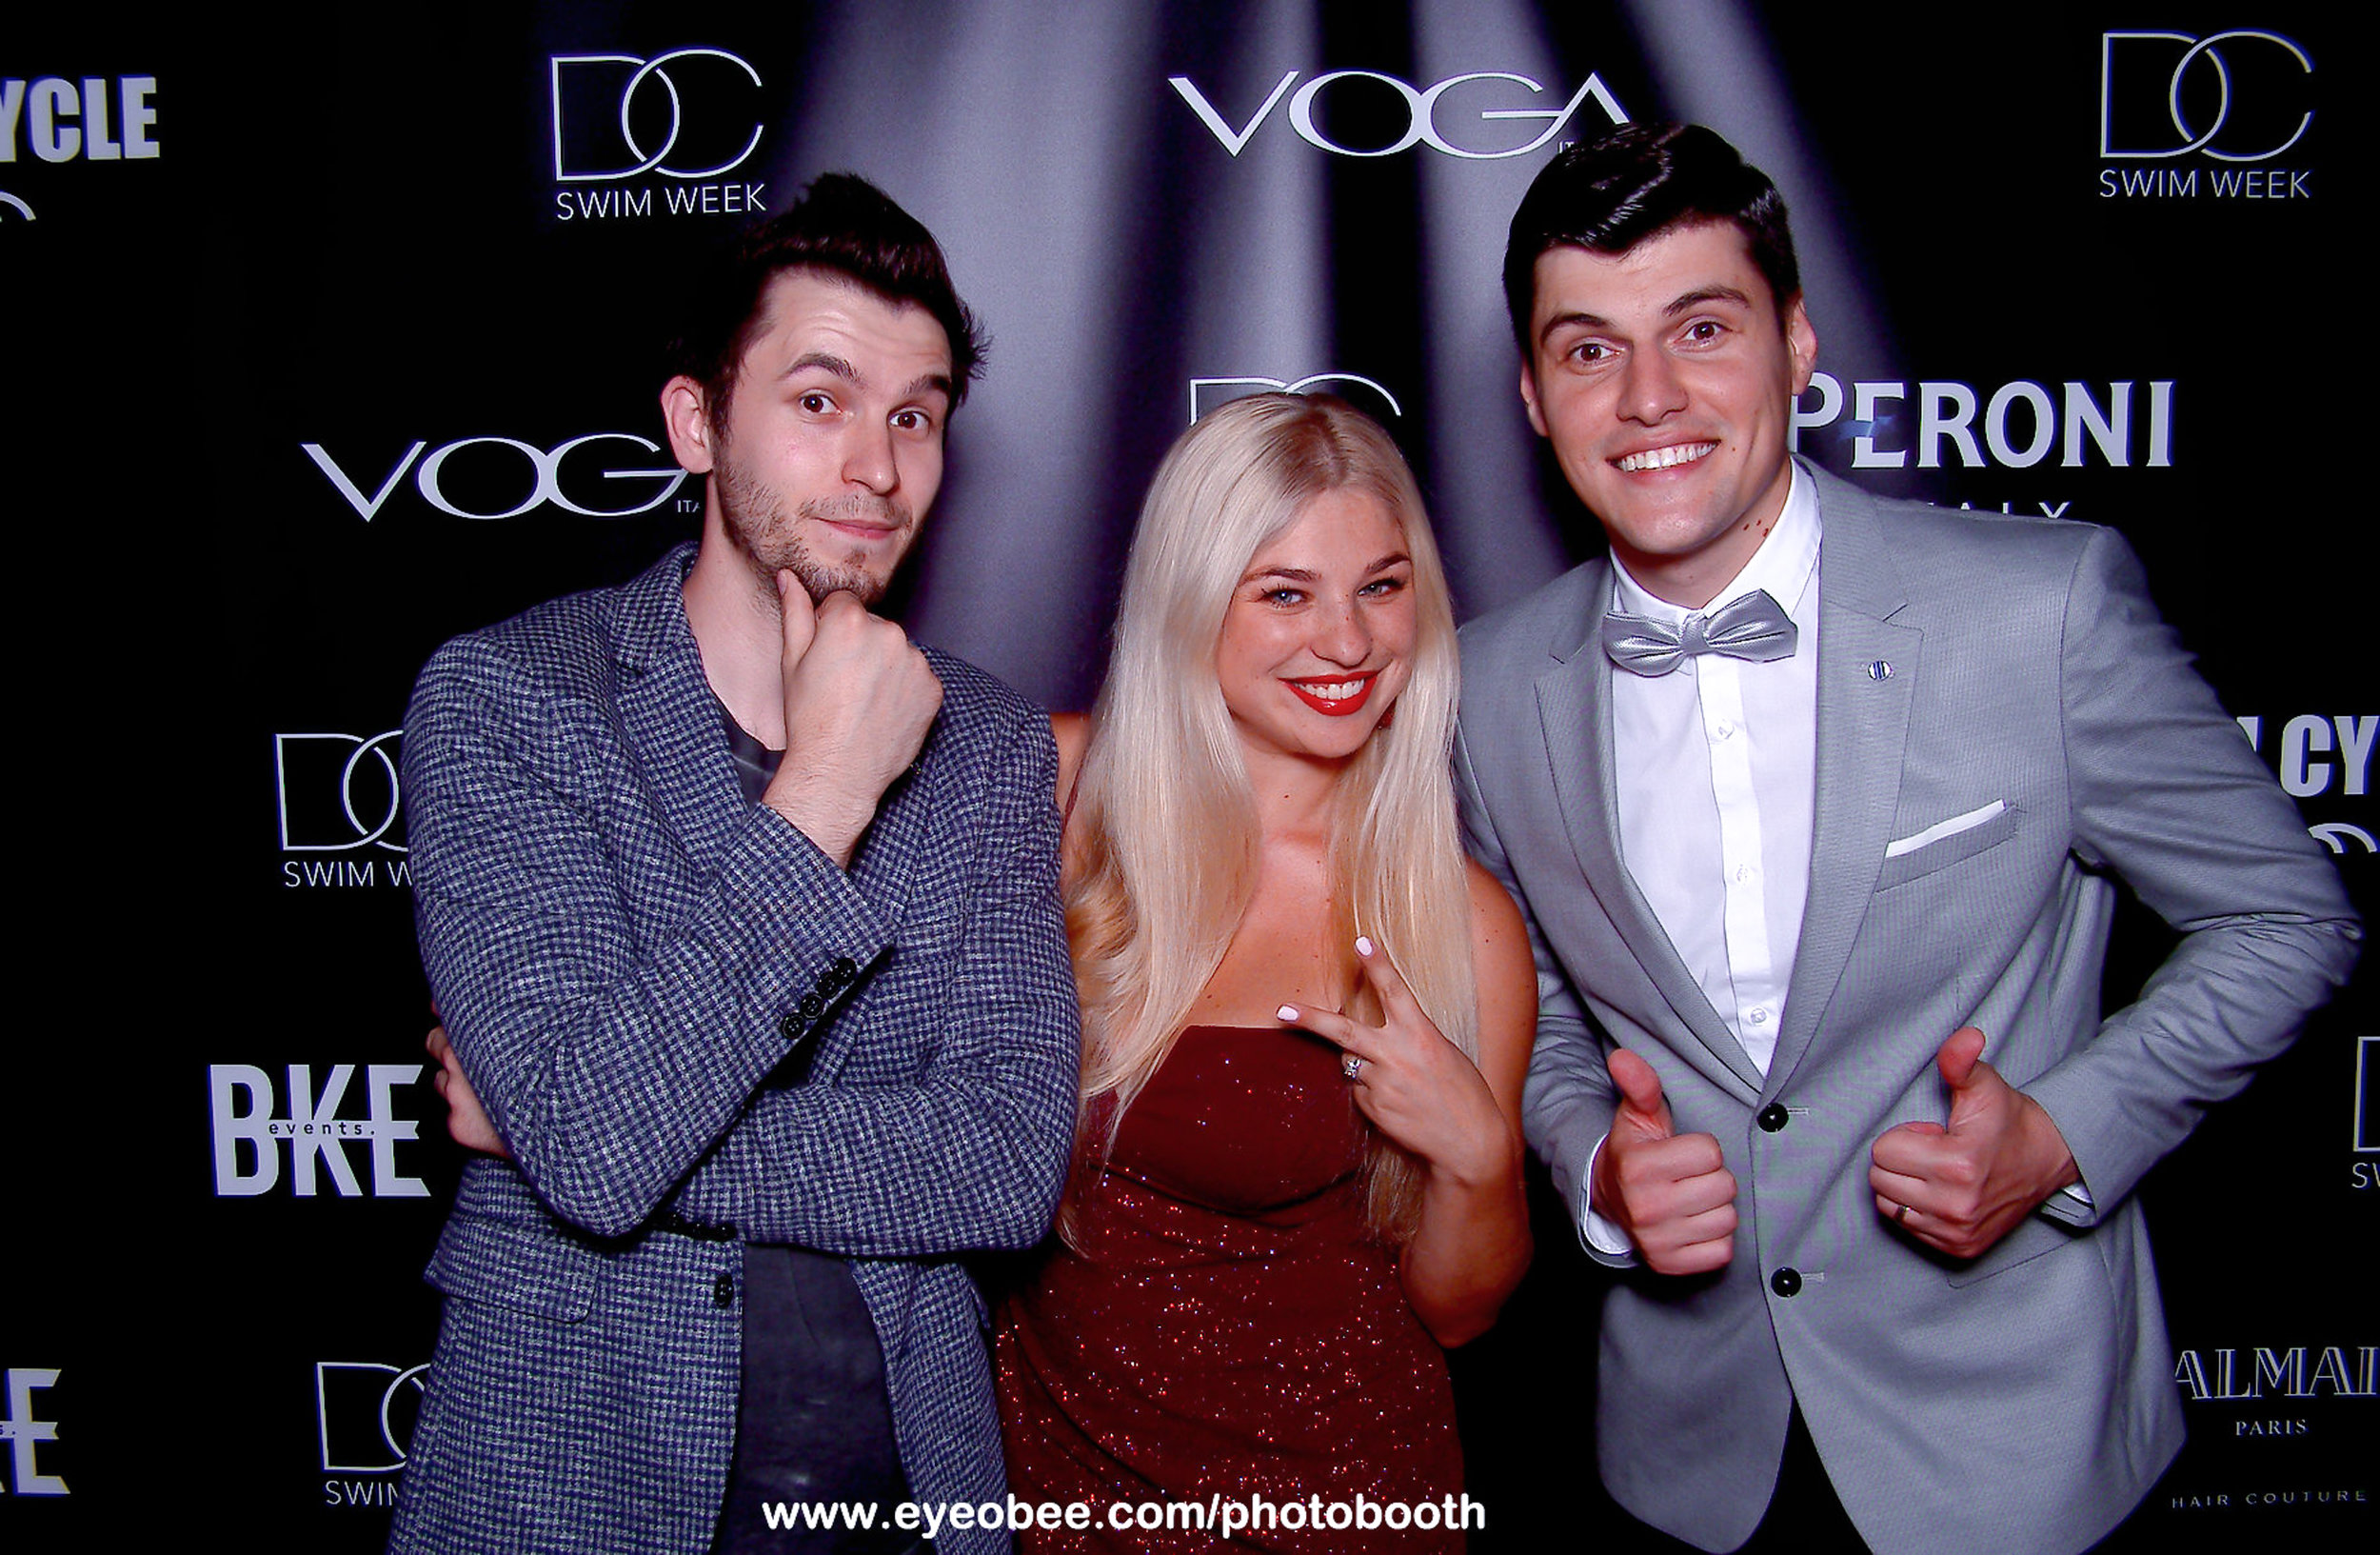 eyeobee PhotoBooth - DCSW-22.jpg